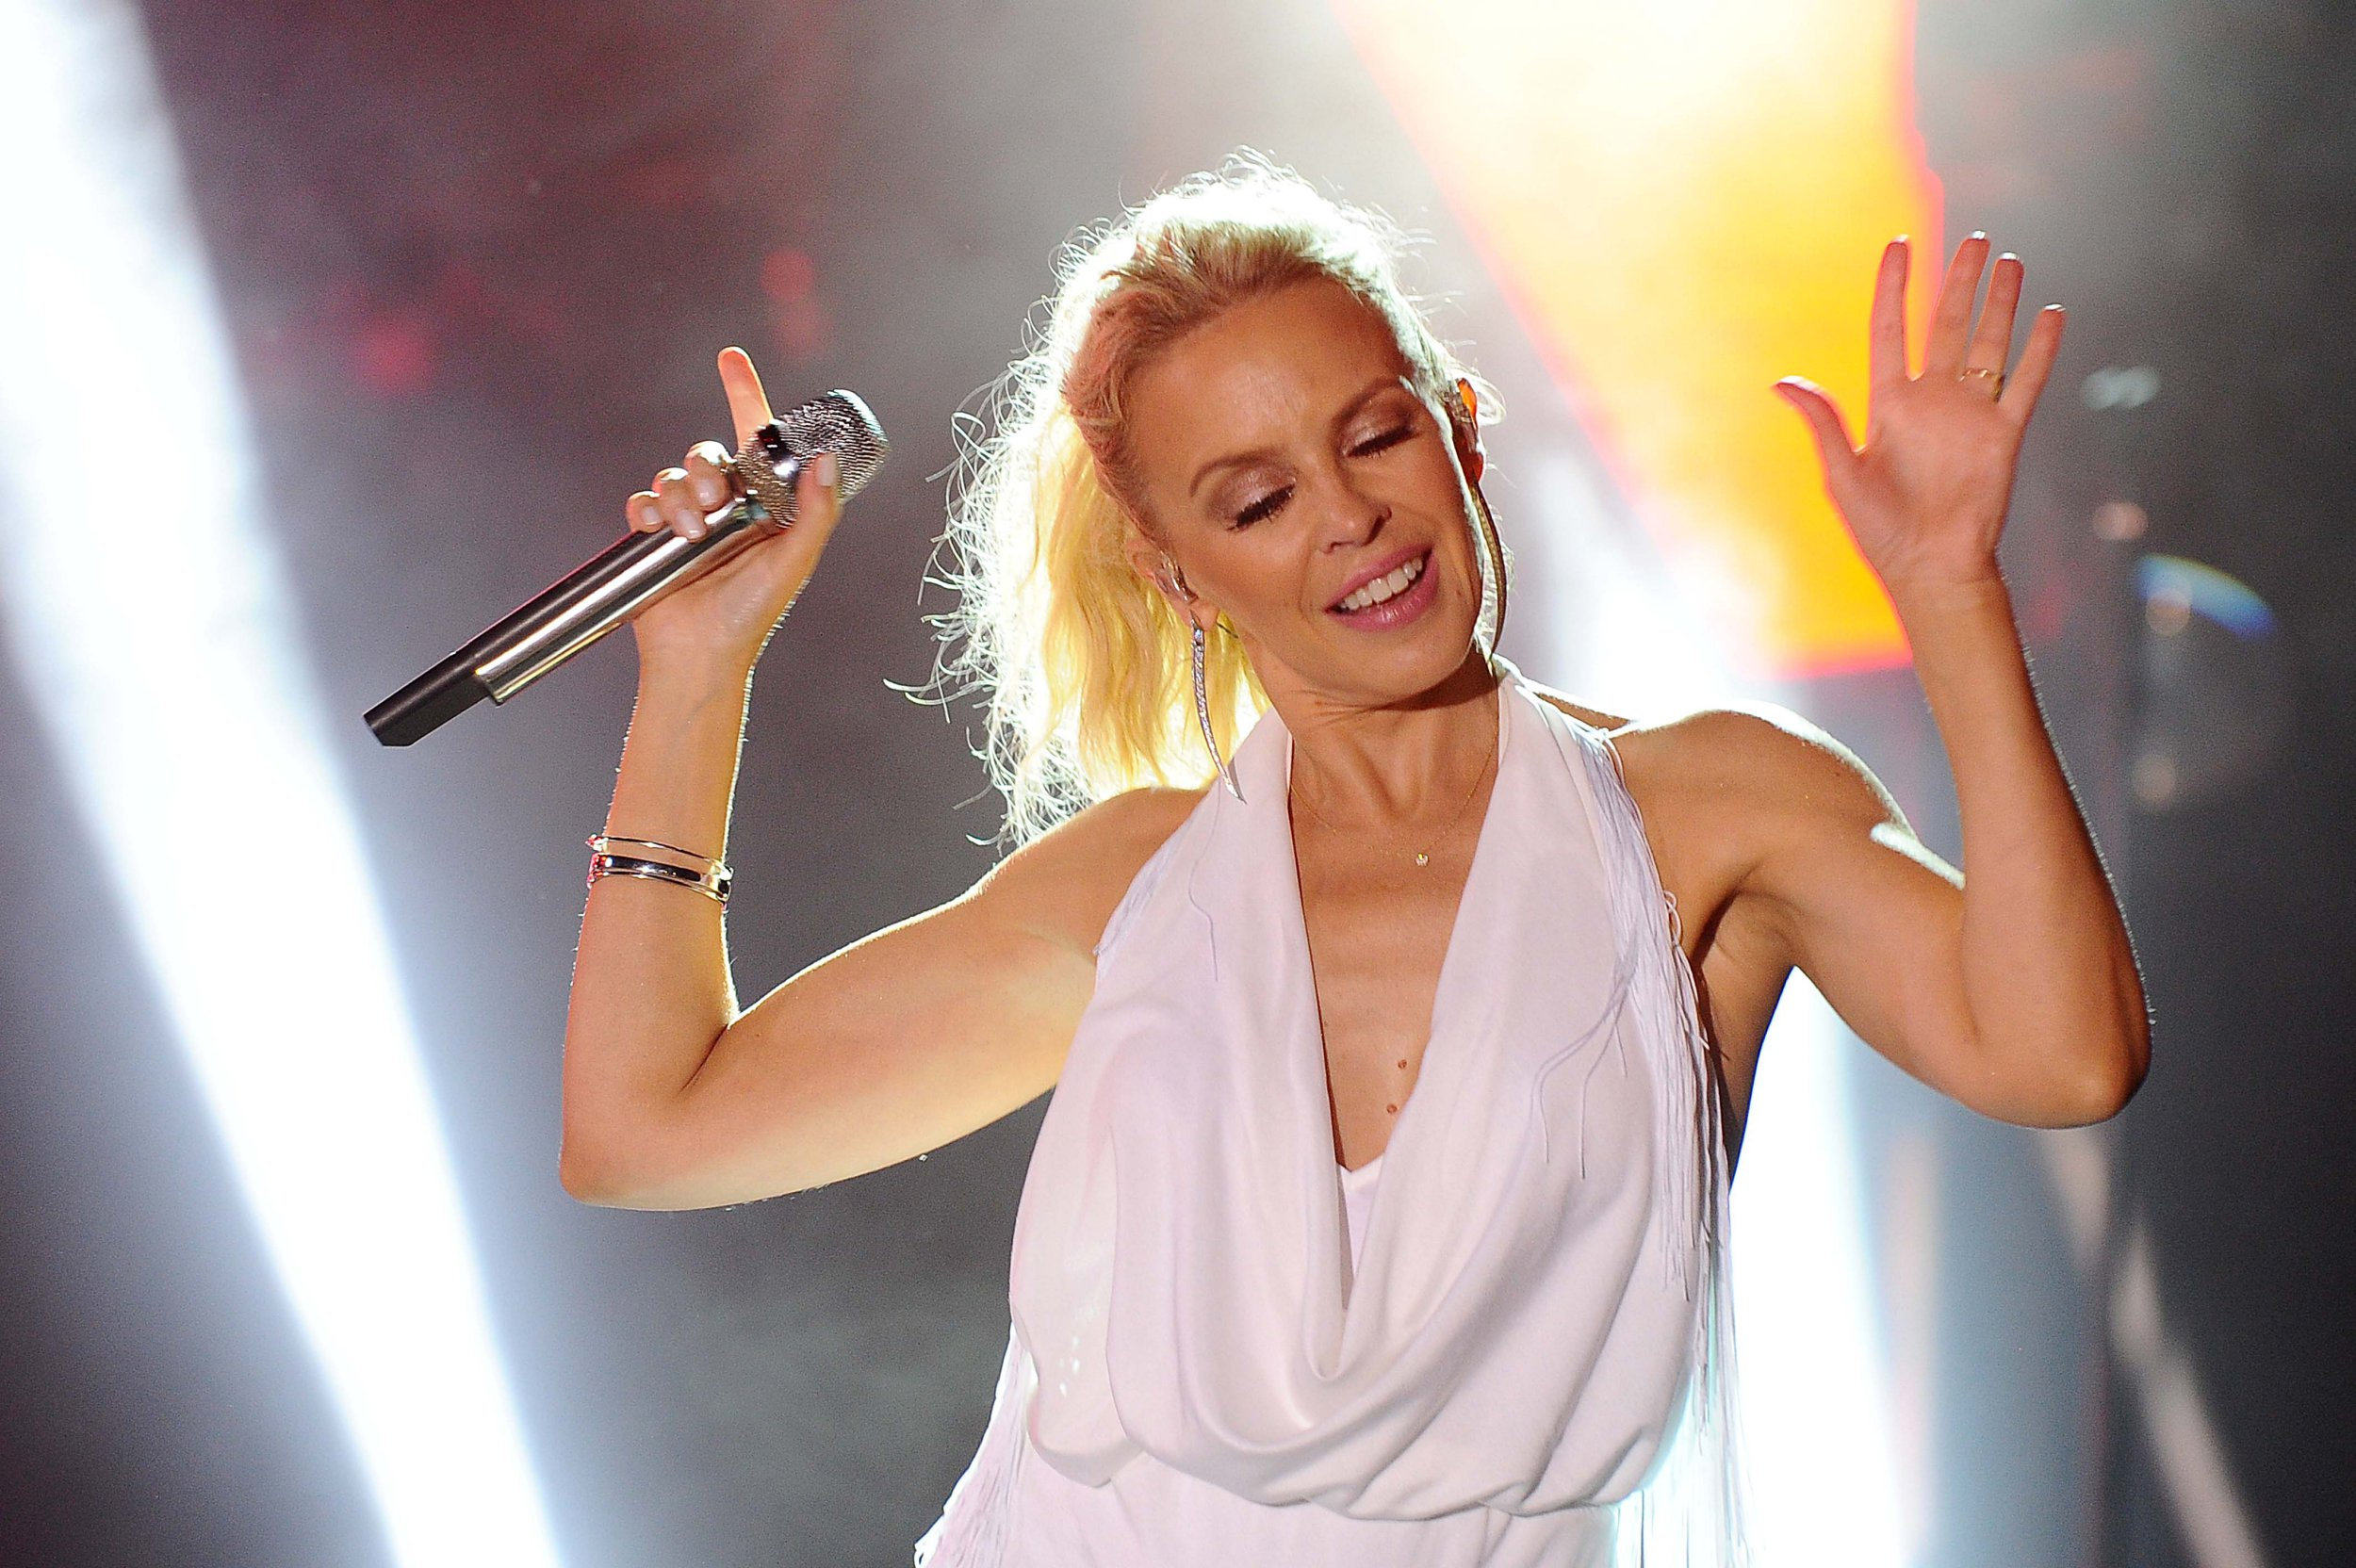 Kylie Minogue is happy living the single life after break-up with Joshua Sasse